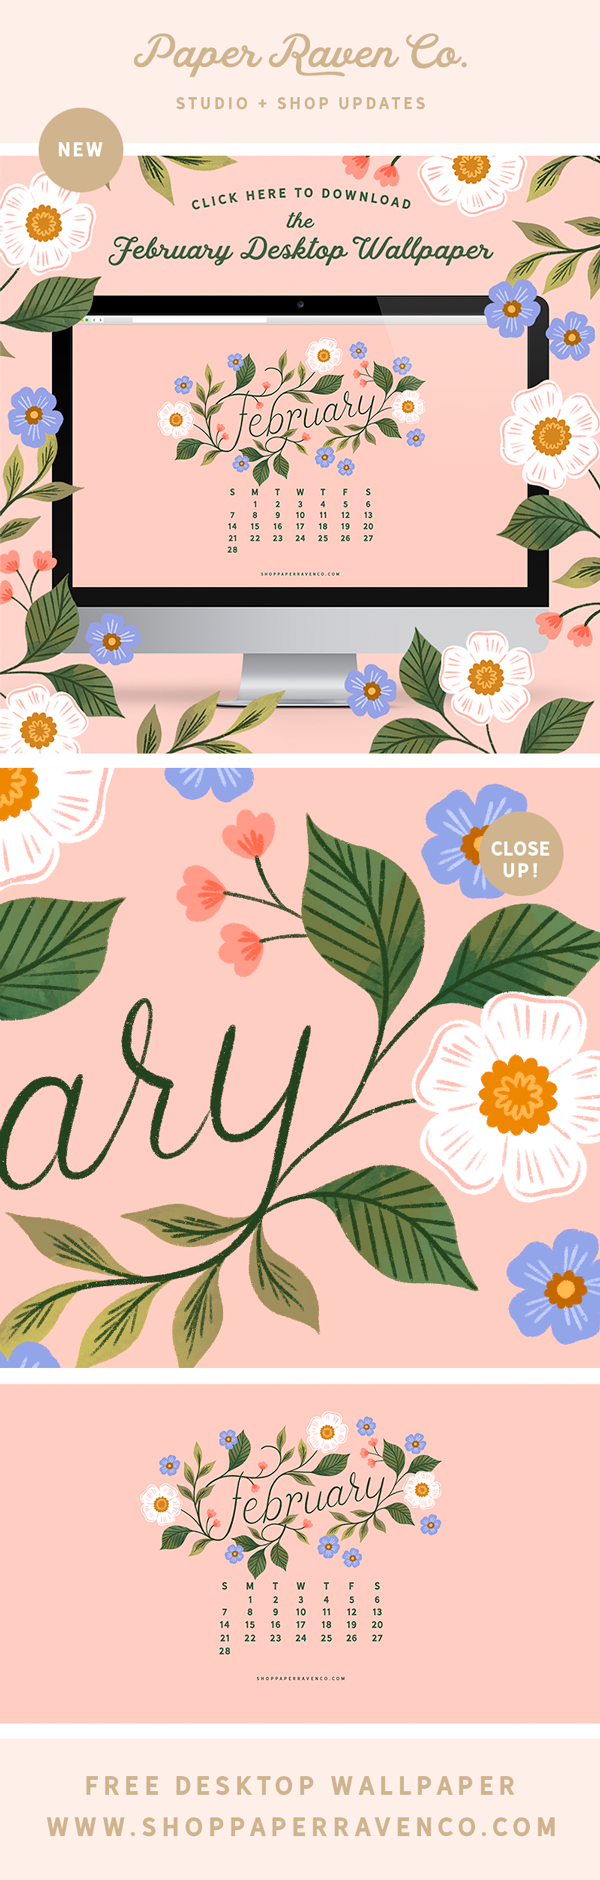 February 2021 Illustrated Desktop Wallpaper by Paper Raven Co. #dressyourtech #desktopwallpaper #computerbackground